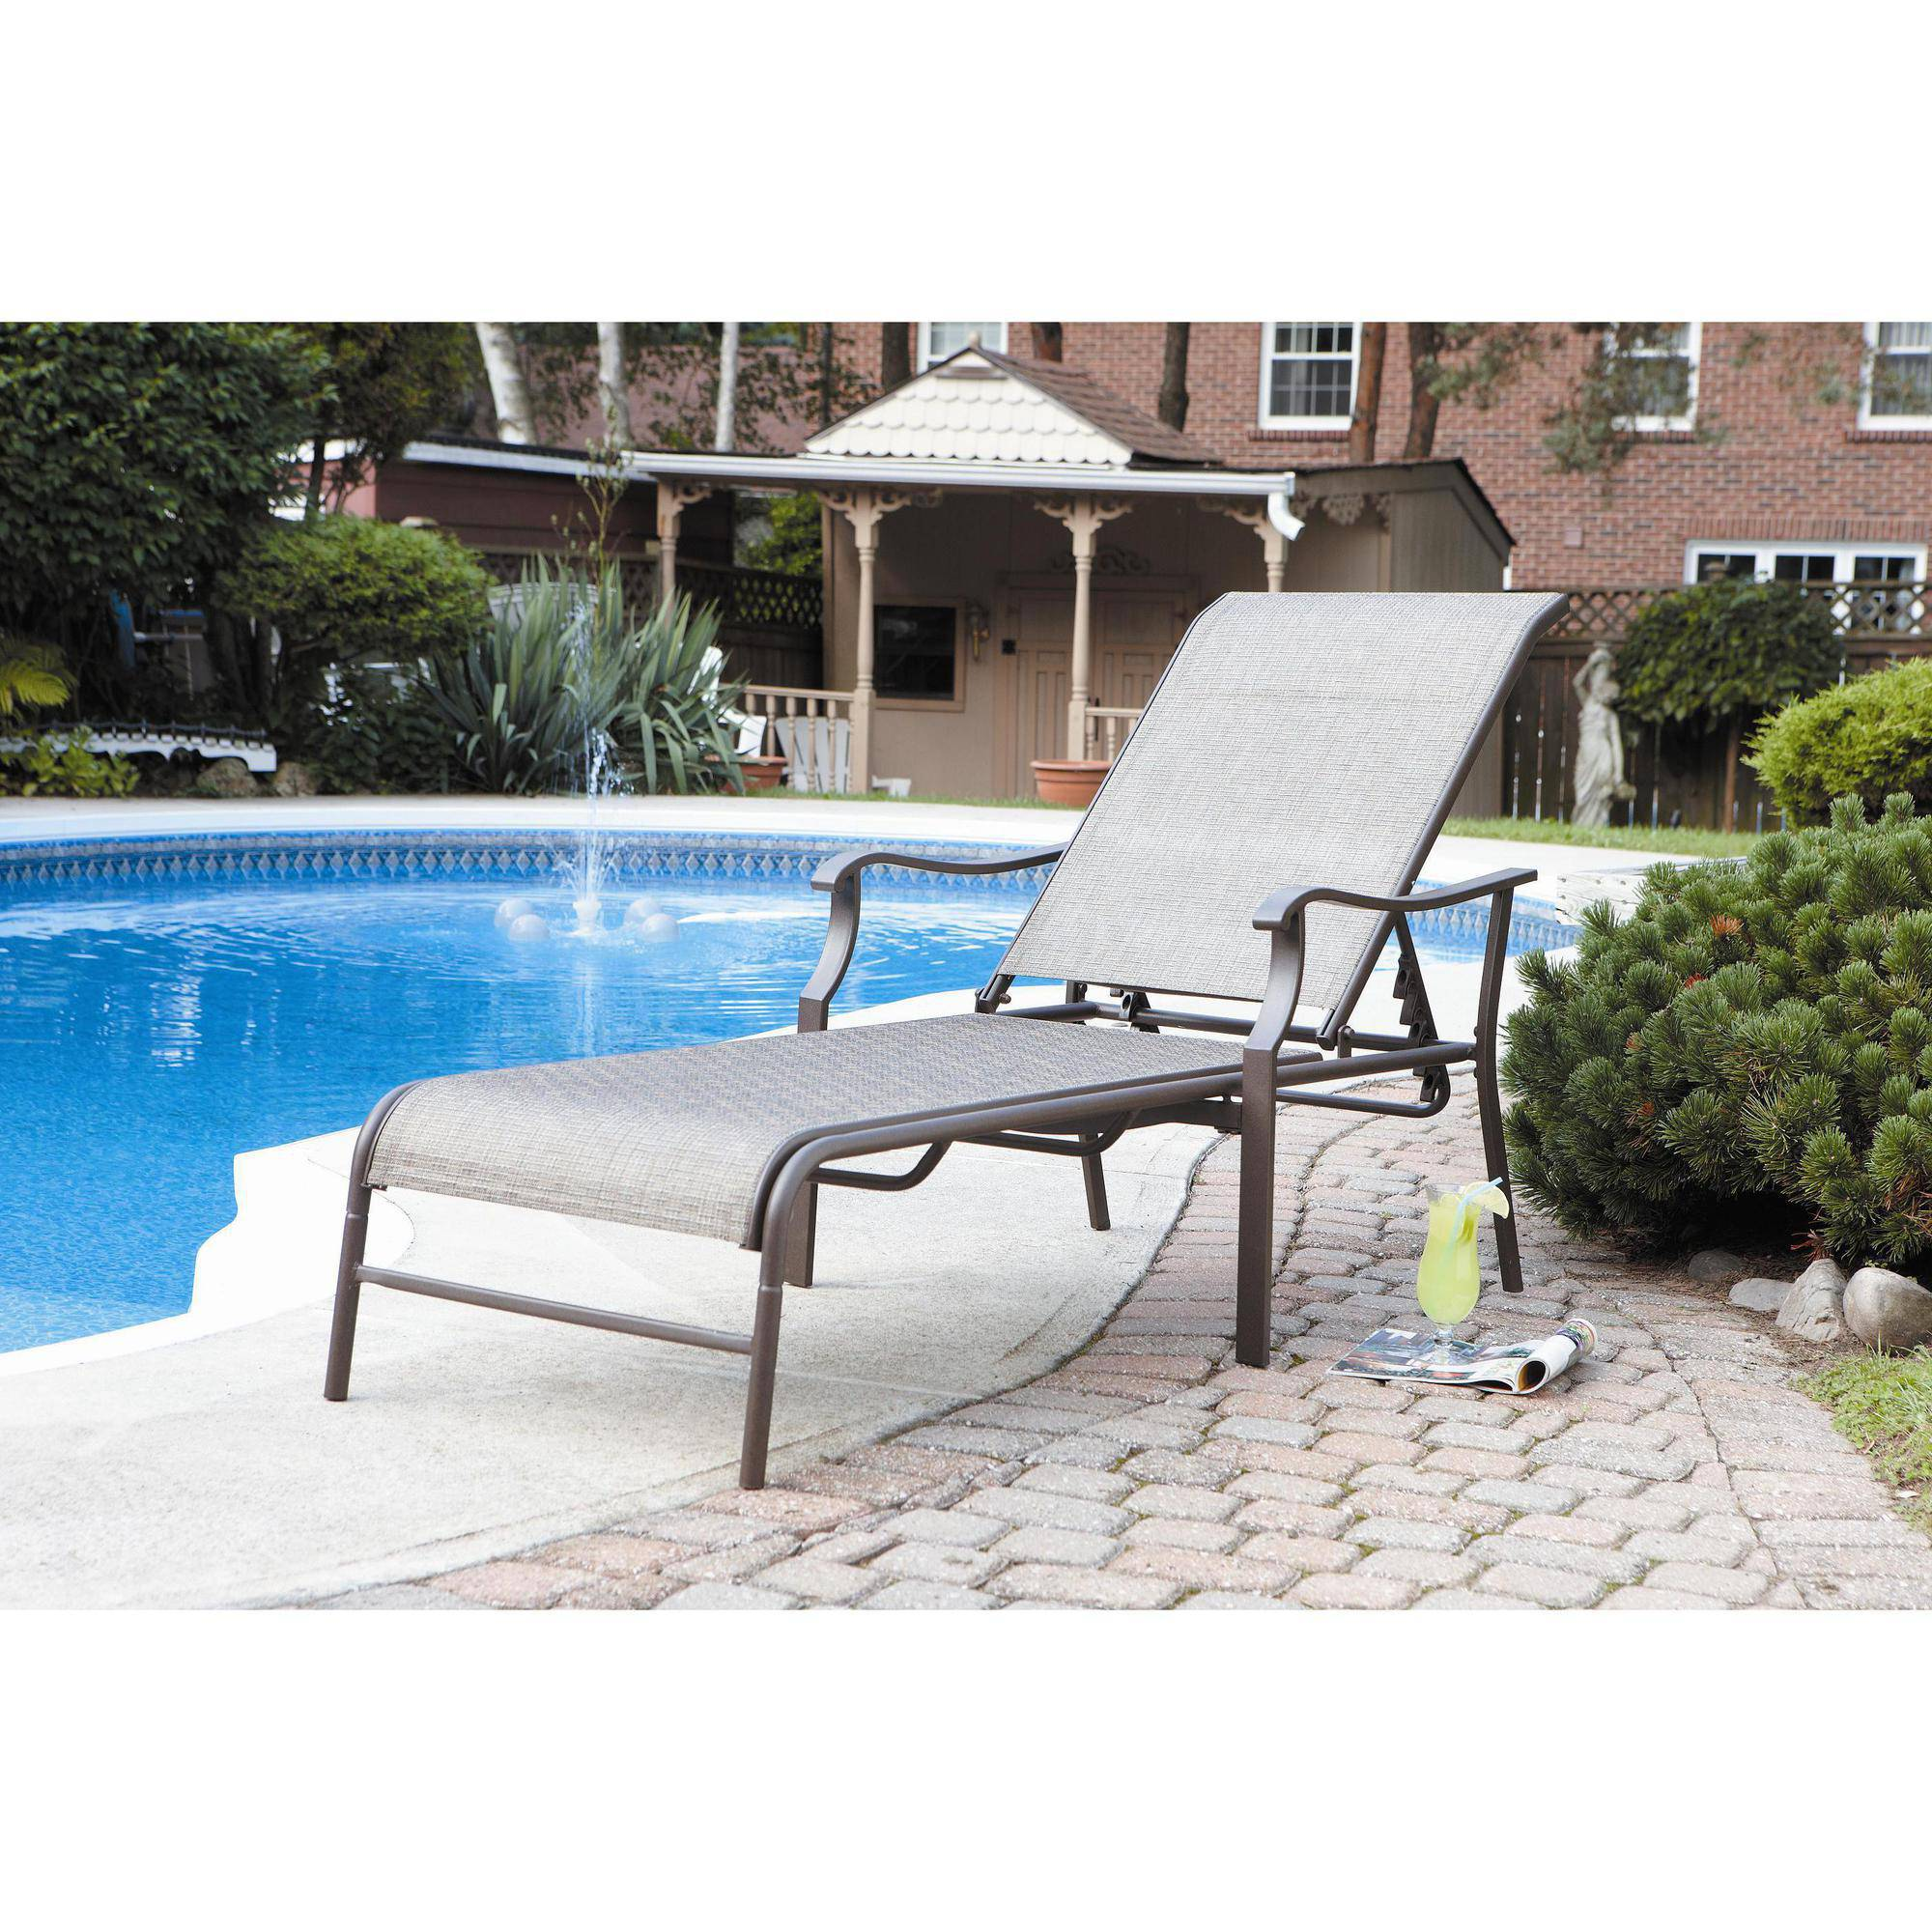 Mainstays Deluxe Orbit Chaise Lounge With Umbrella Amp Side